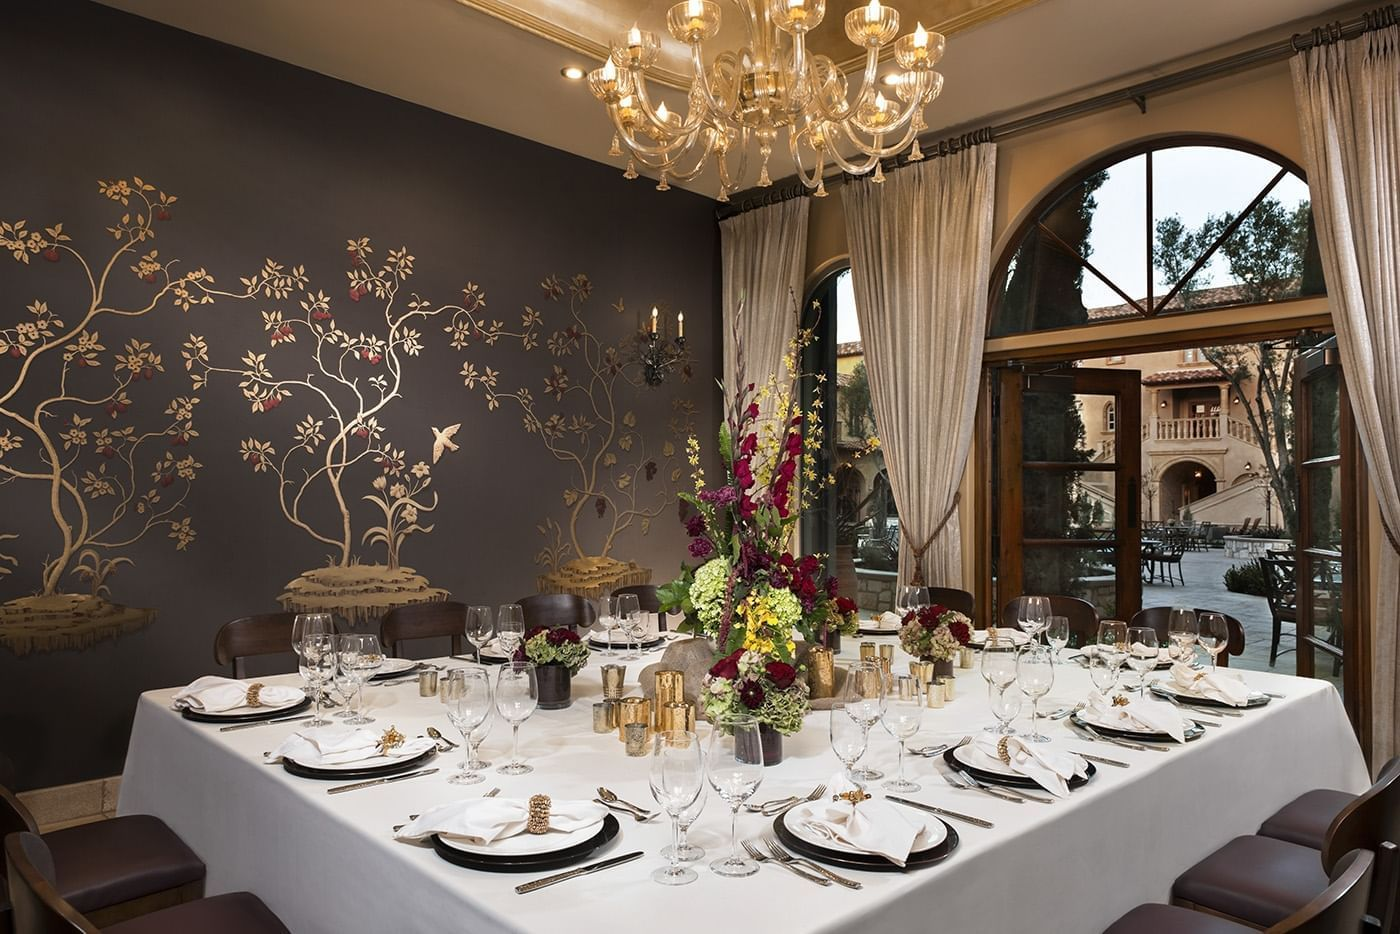 The Murano Private dining room prepared for a party of 14